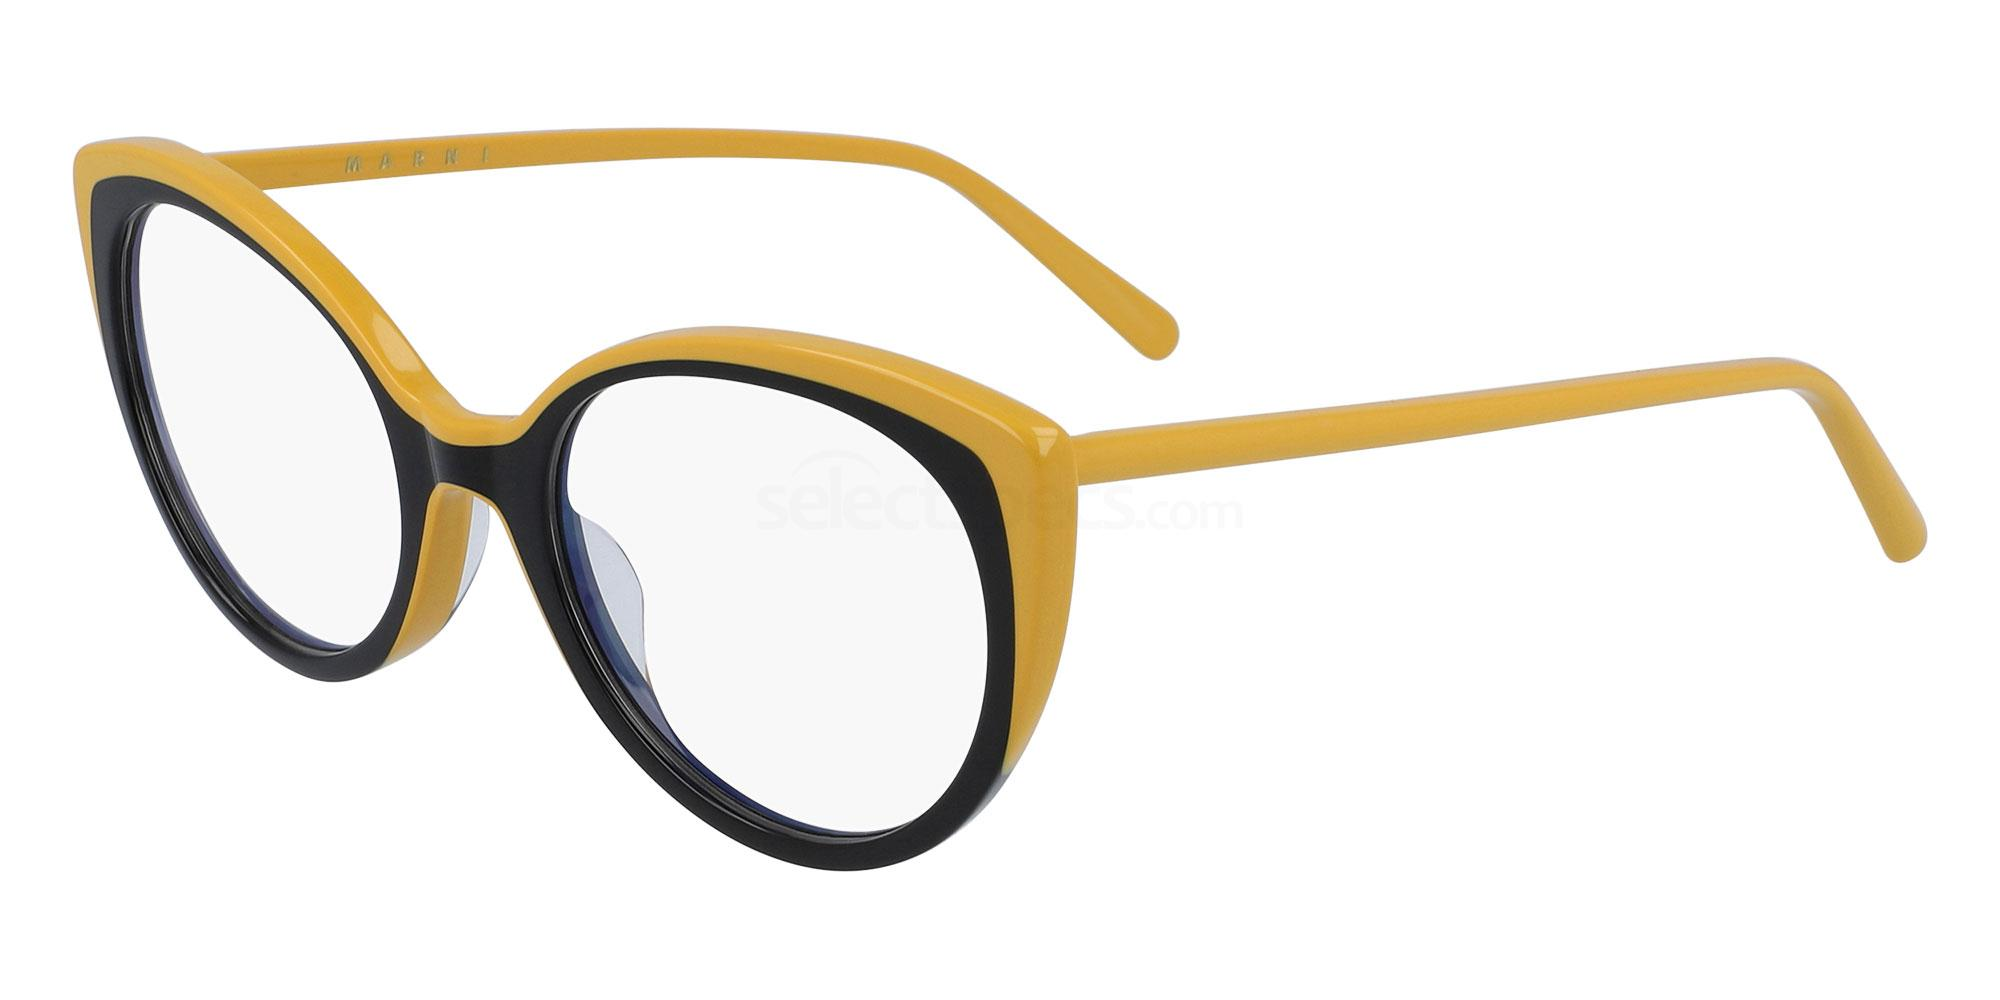 011 ME2625 Glasses, Marni